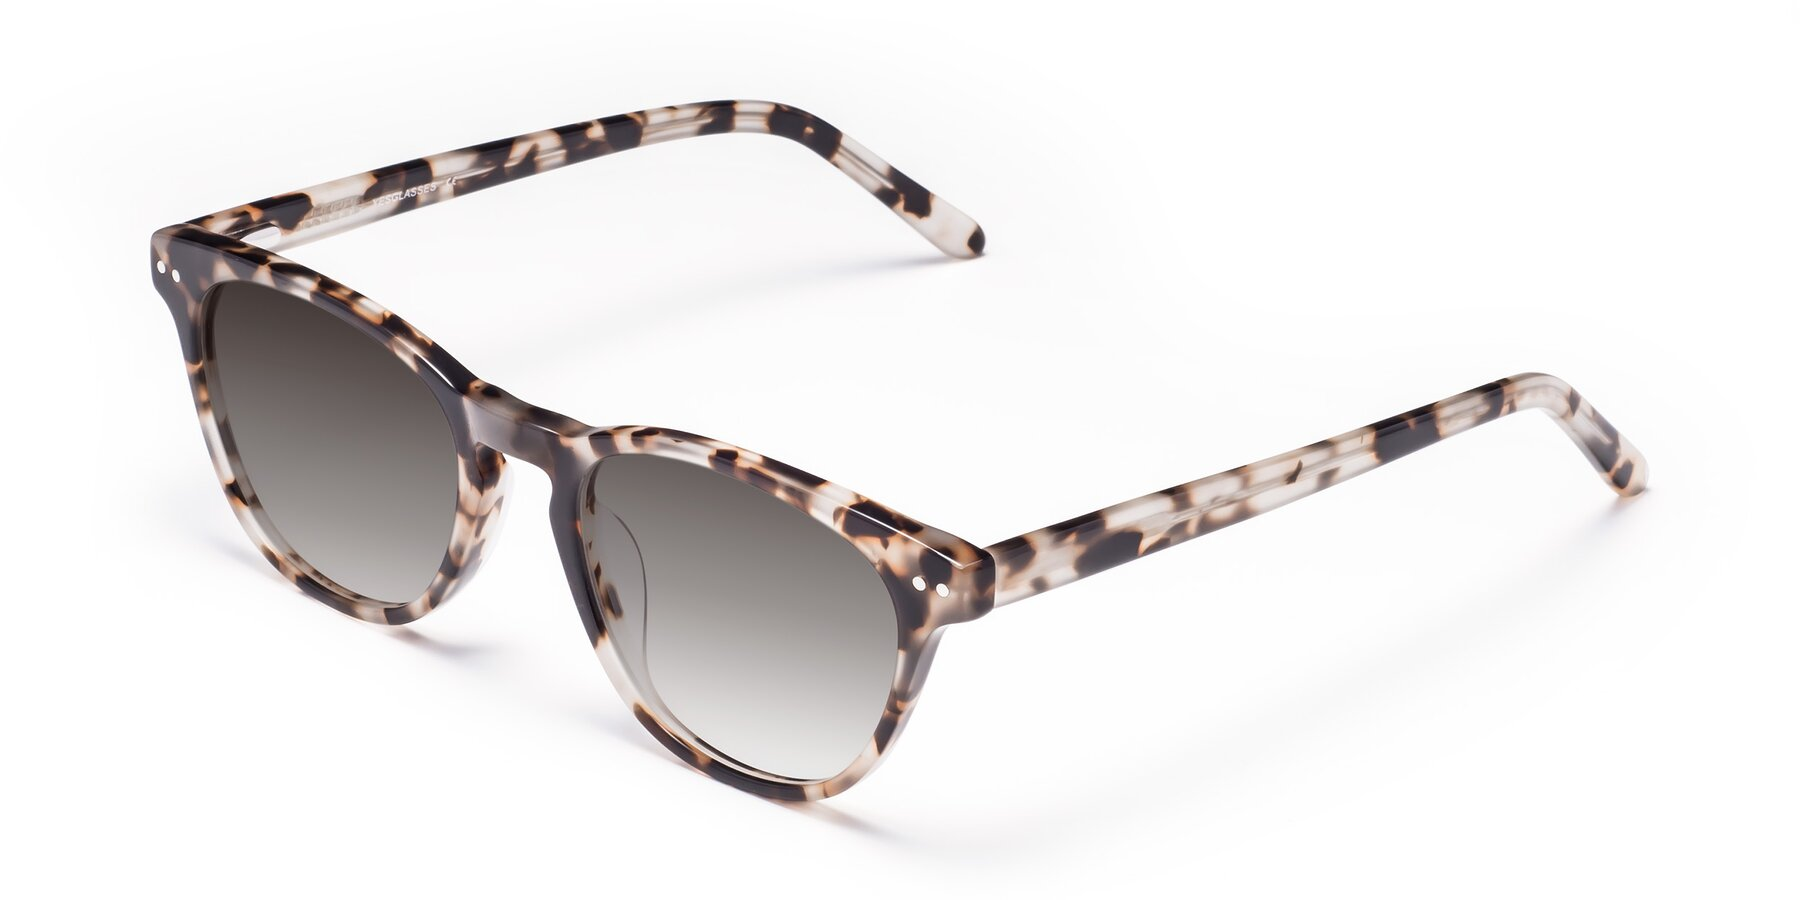 Angle of Blaze in Tortoise with Gray Gradient Lenses